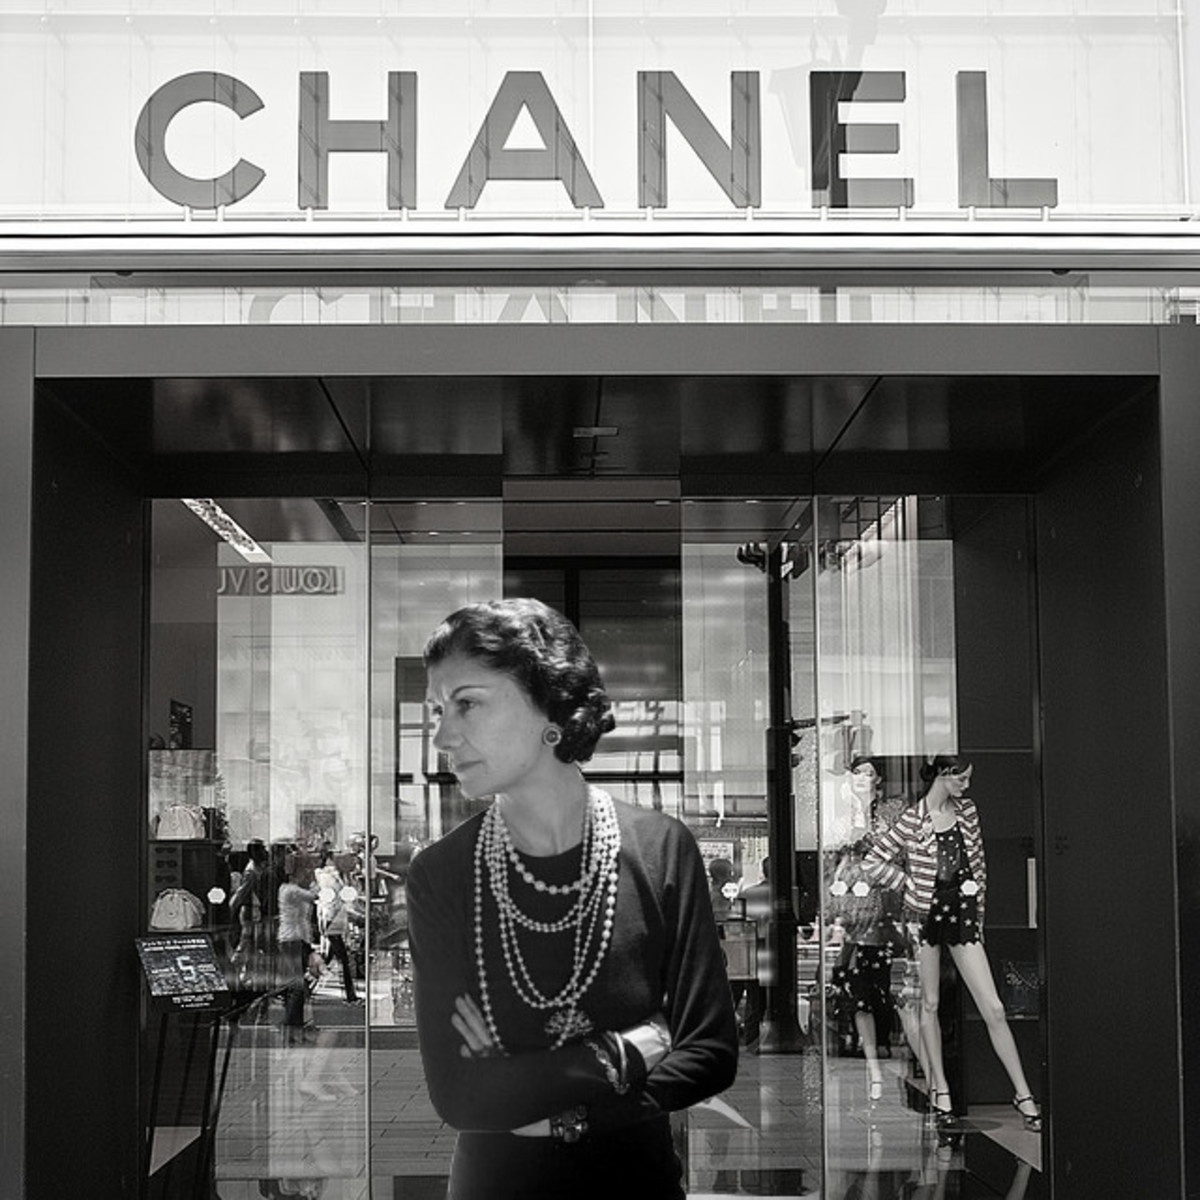 The House of Chanel at  31 rue Cambon in Paris, France.